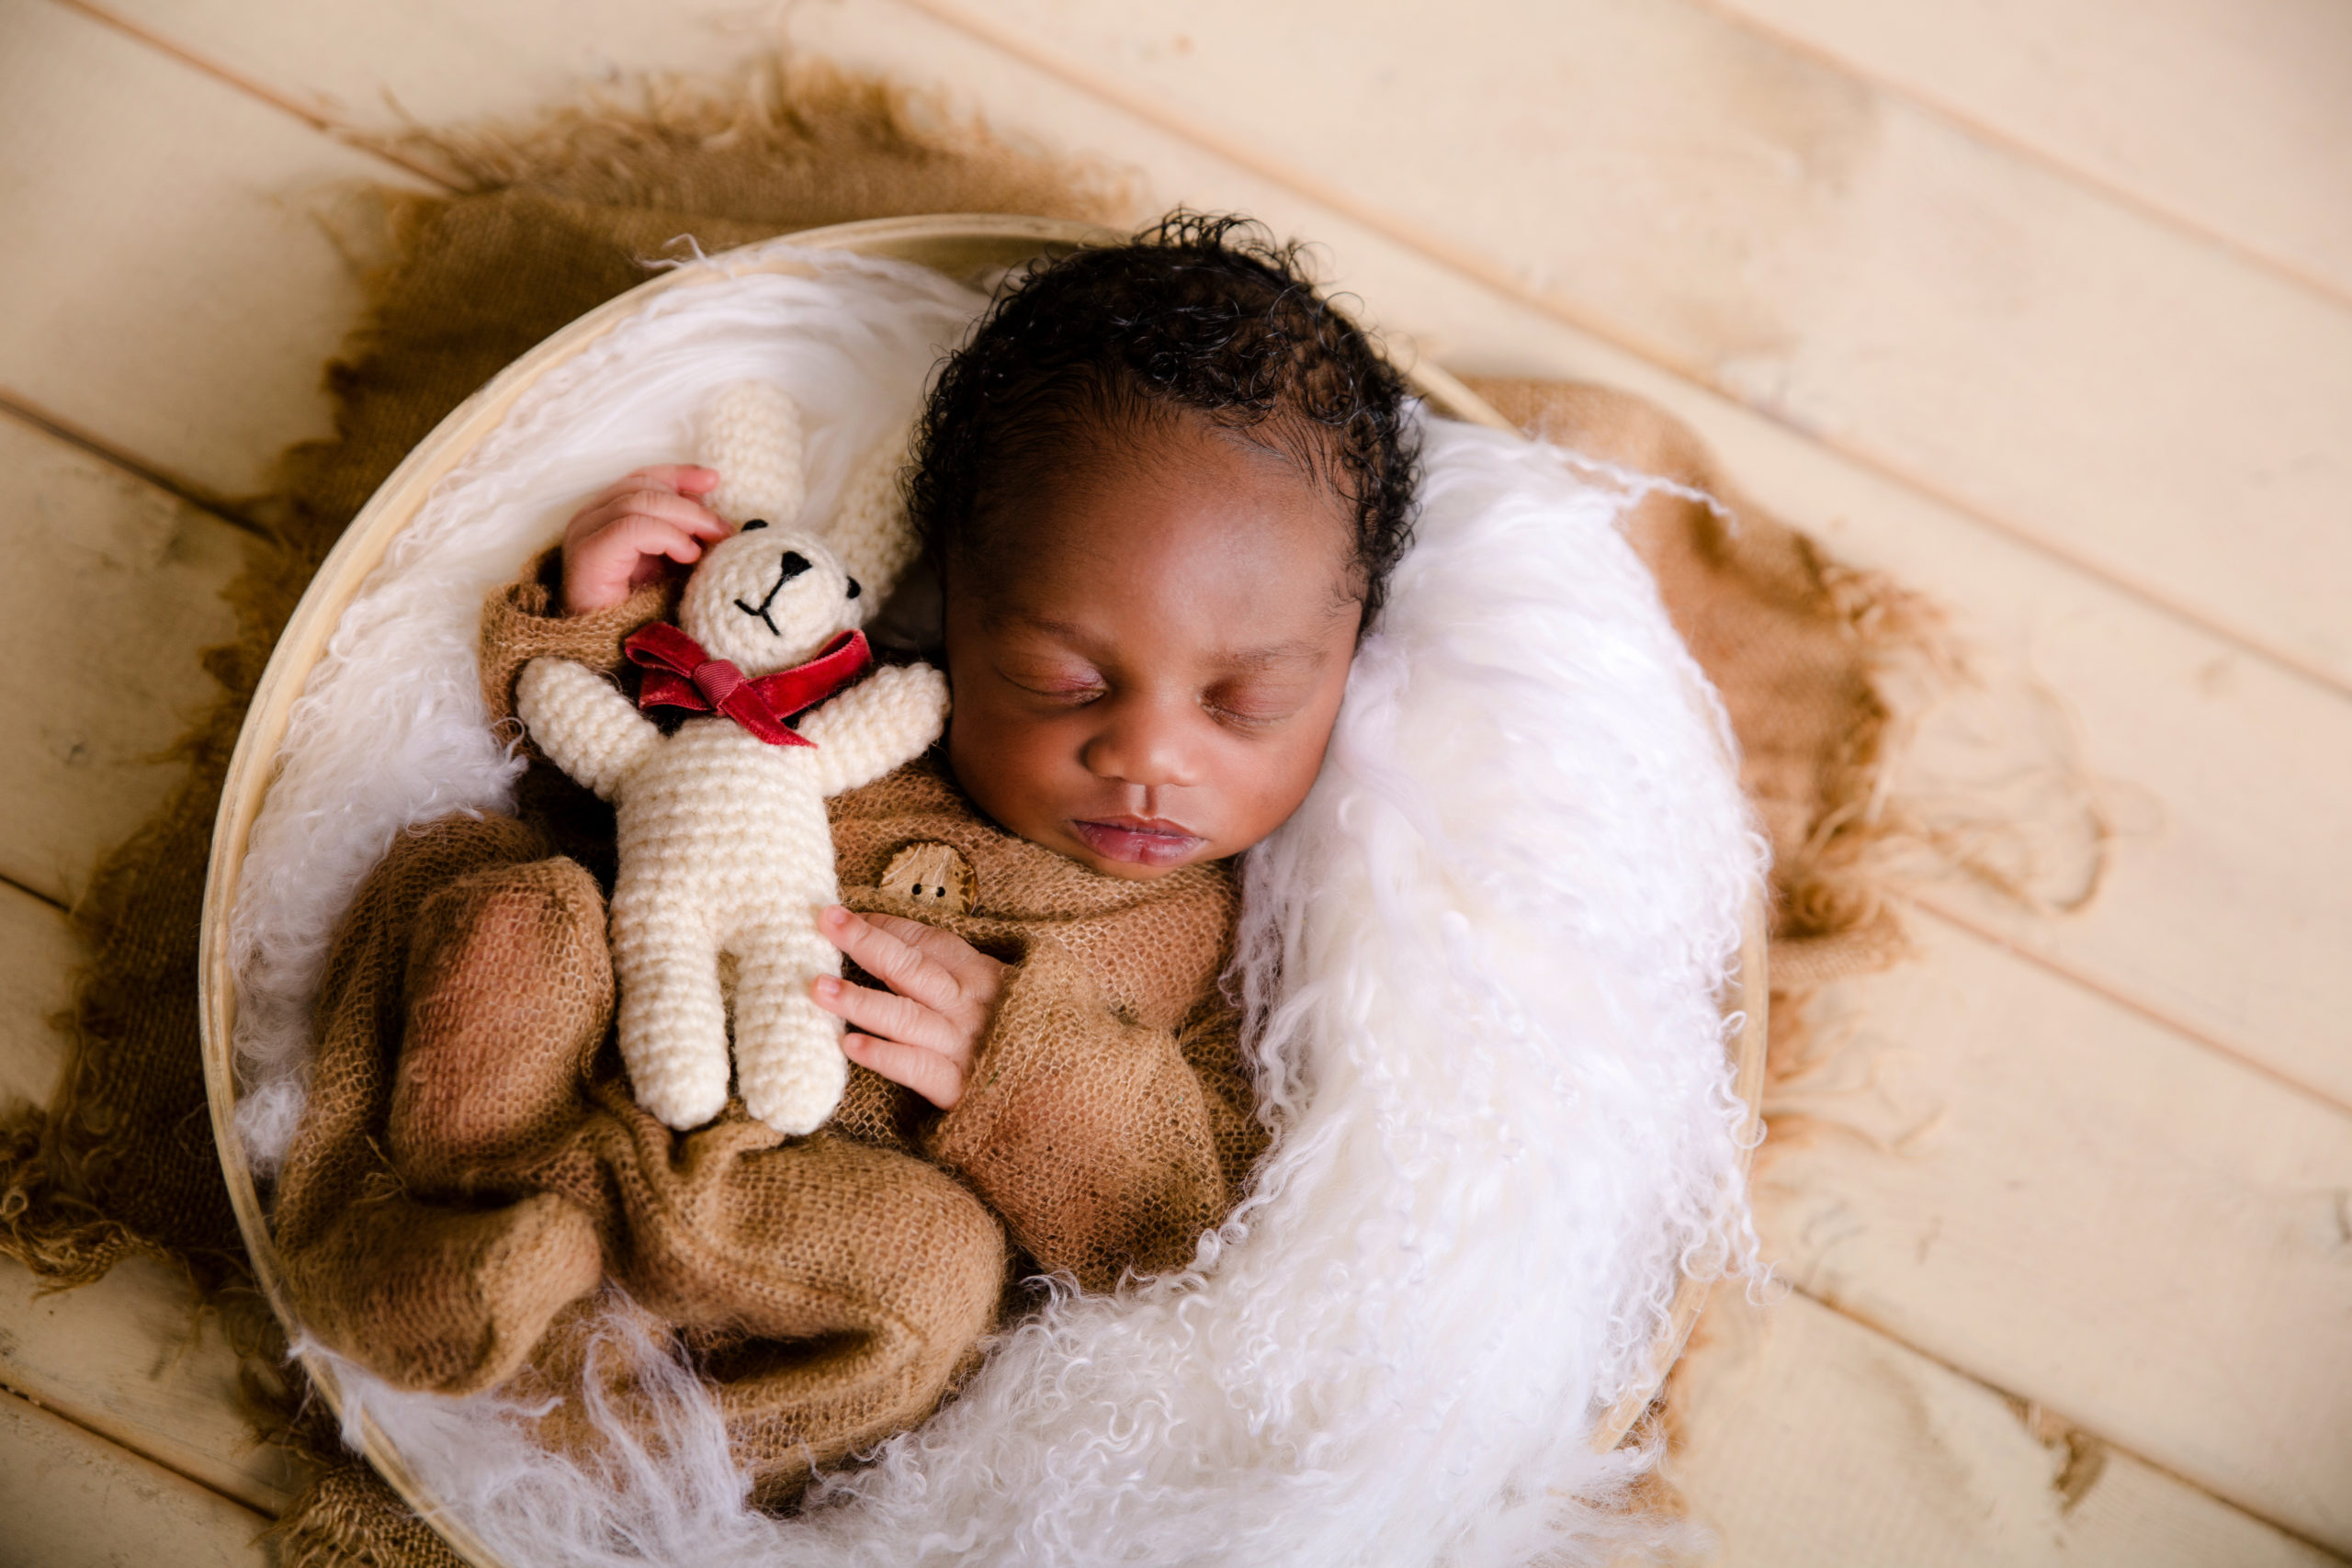 Newborn baby in a bowl Newborn photography baby of colour in a bowl wearing a brown all in one onsie on a beige and white background with wooden floor baby posed curled in a bowl cute baby boy professional newborn photo session in a Studio in Wimbledon South West London SW19